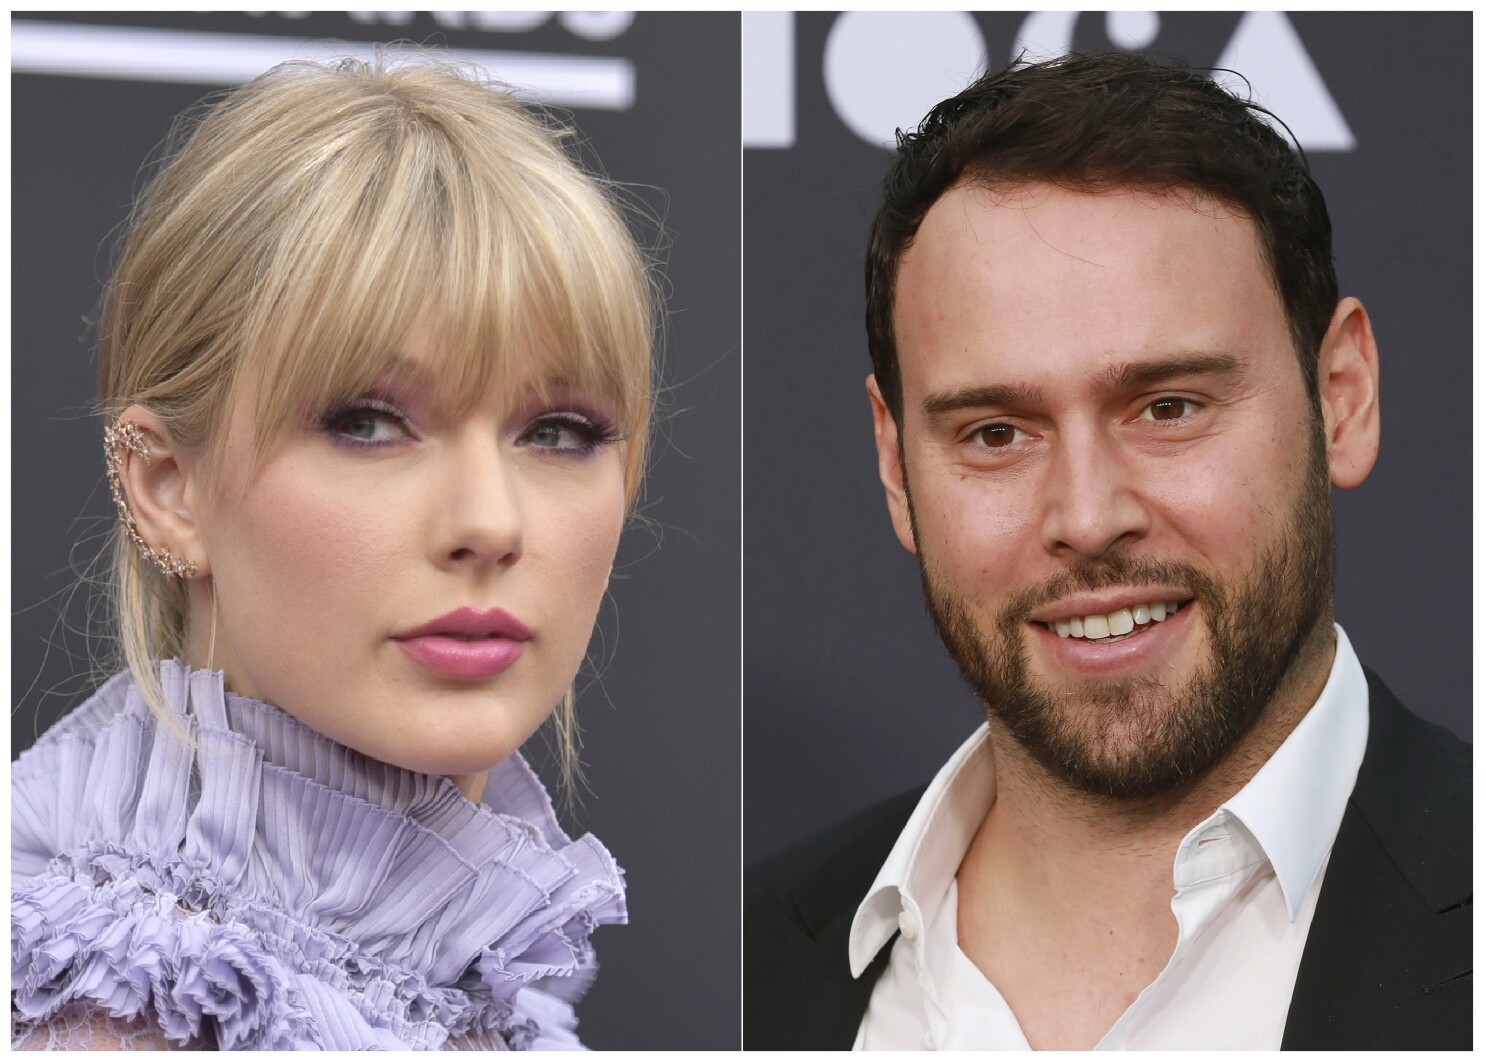 Taylor Swift Ex Label Trade Accusations In Fight Over Music Los Angeles Times